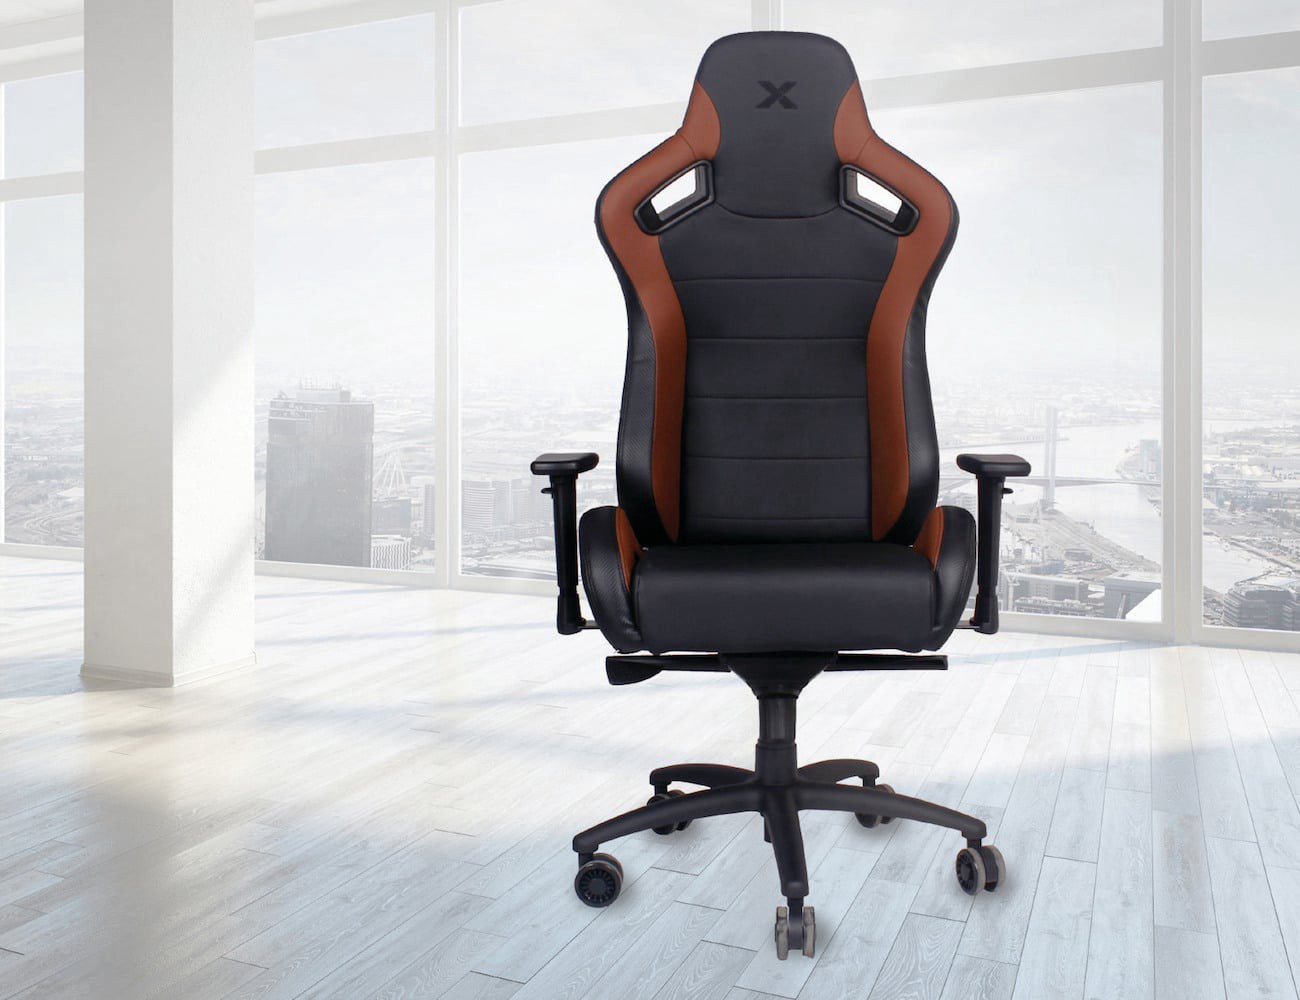 Surprising Here Are The Best Chairs For Work And Play In 2019 Gadget Gmtry Best Dining Table And Chair Ideas Images Gmtryco